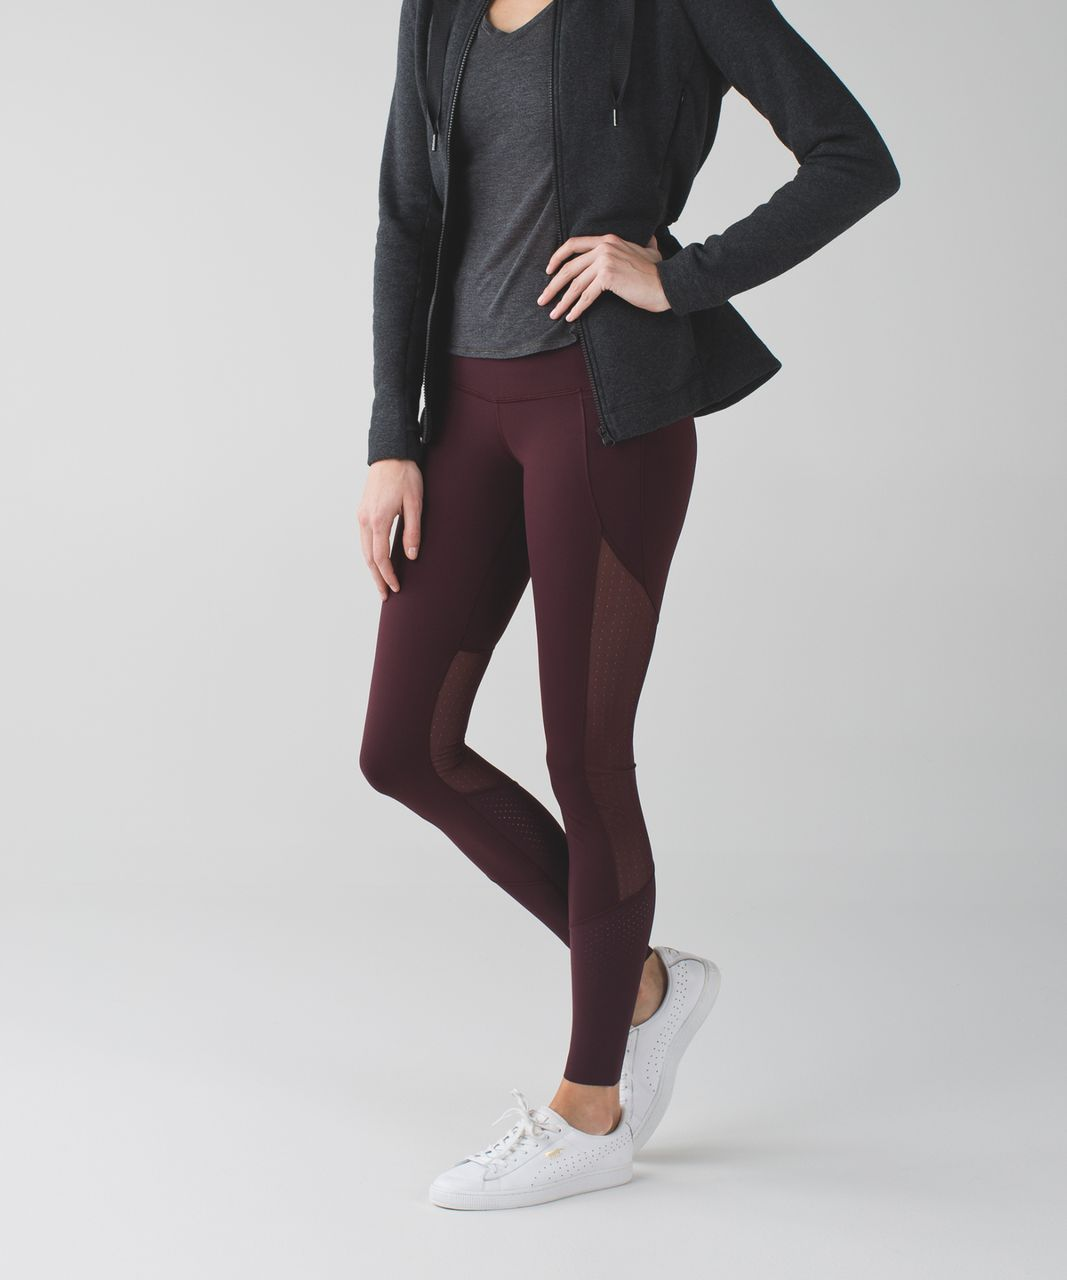 Lululemon Barre Star Pant *Full-On Luon - Bordeaux Drama